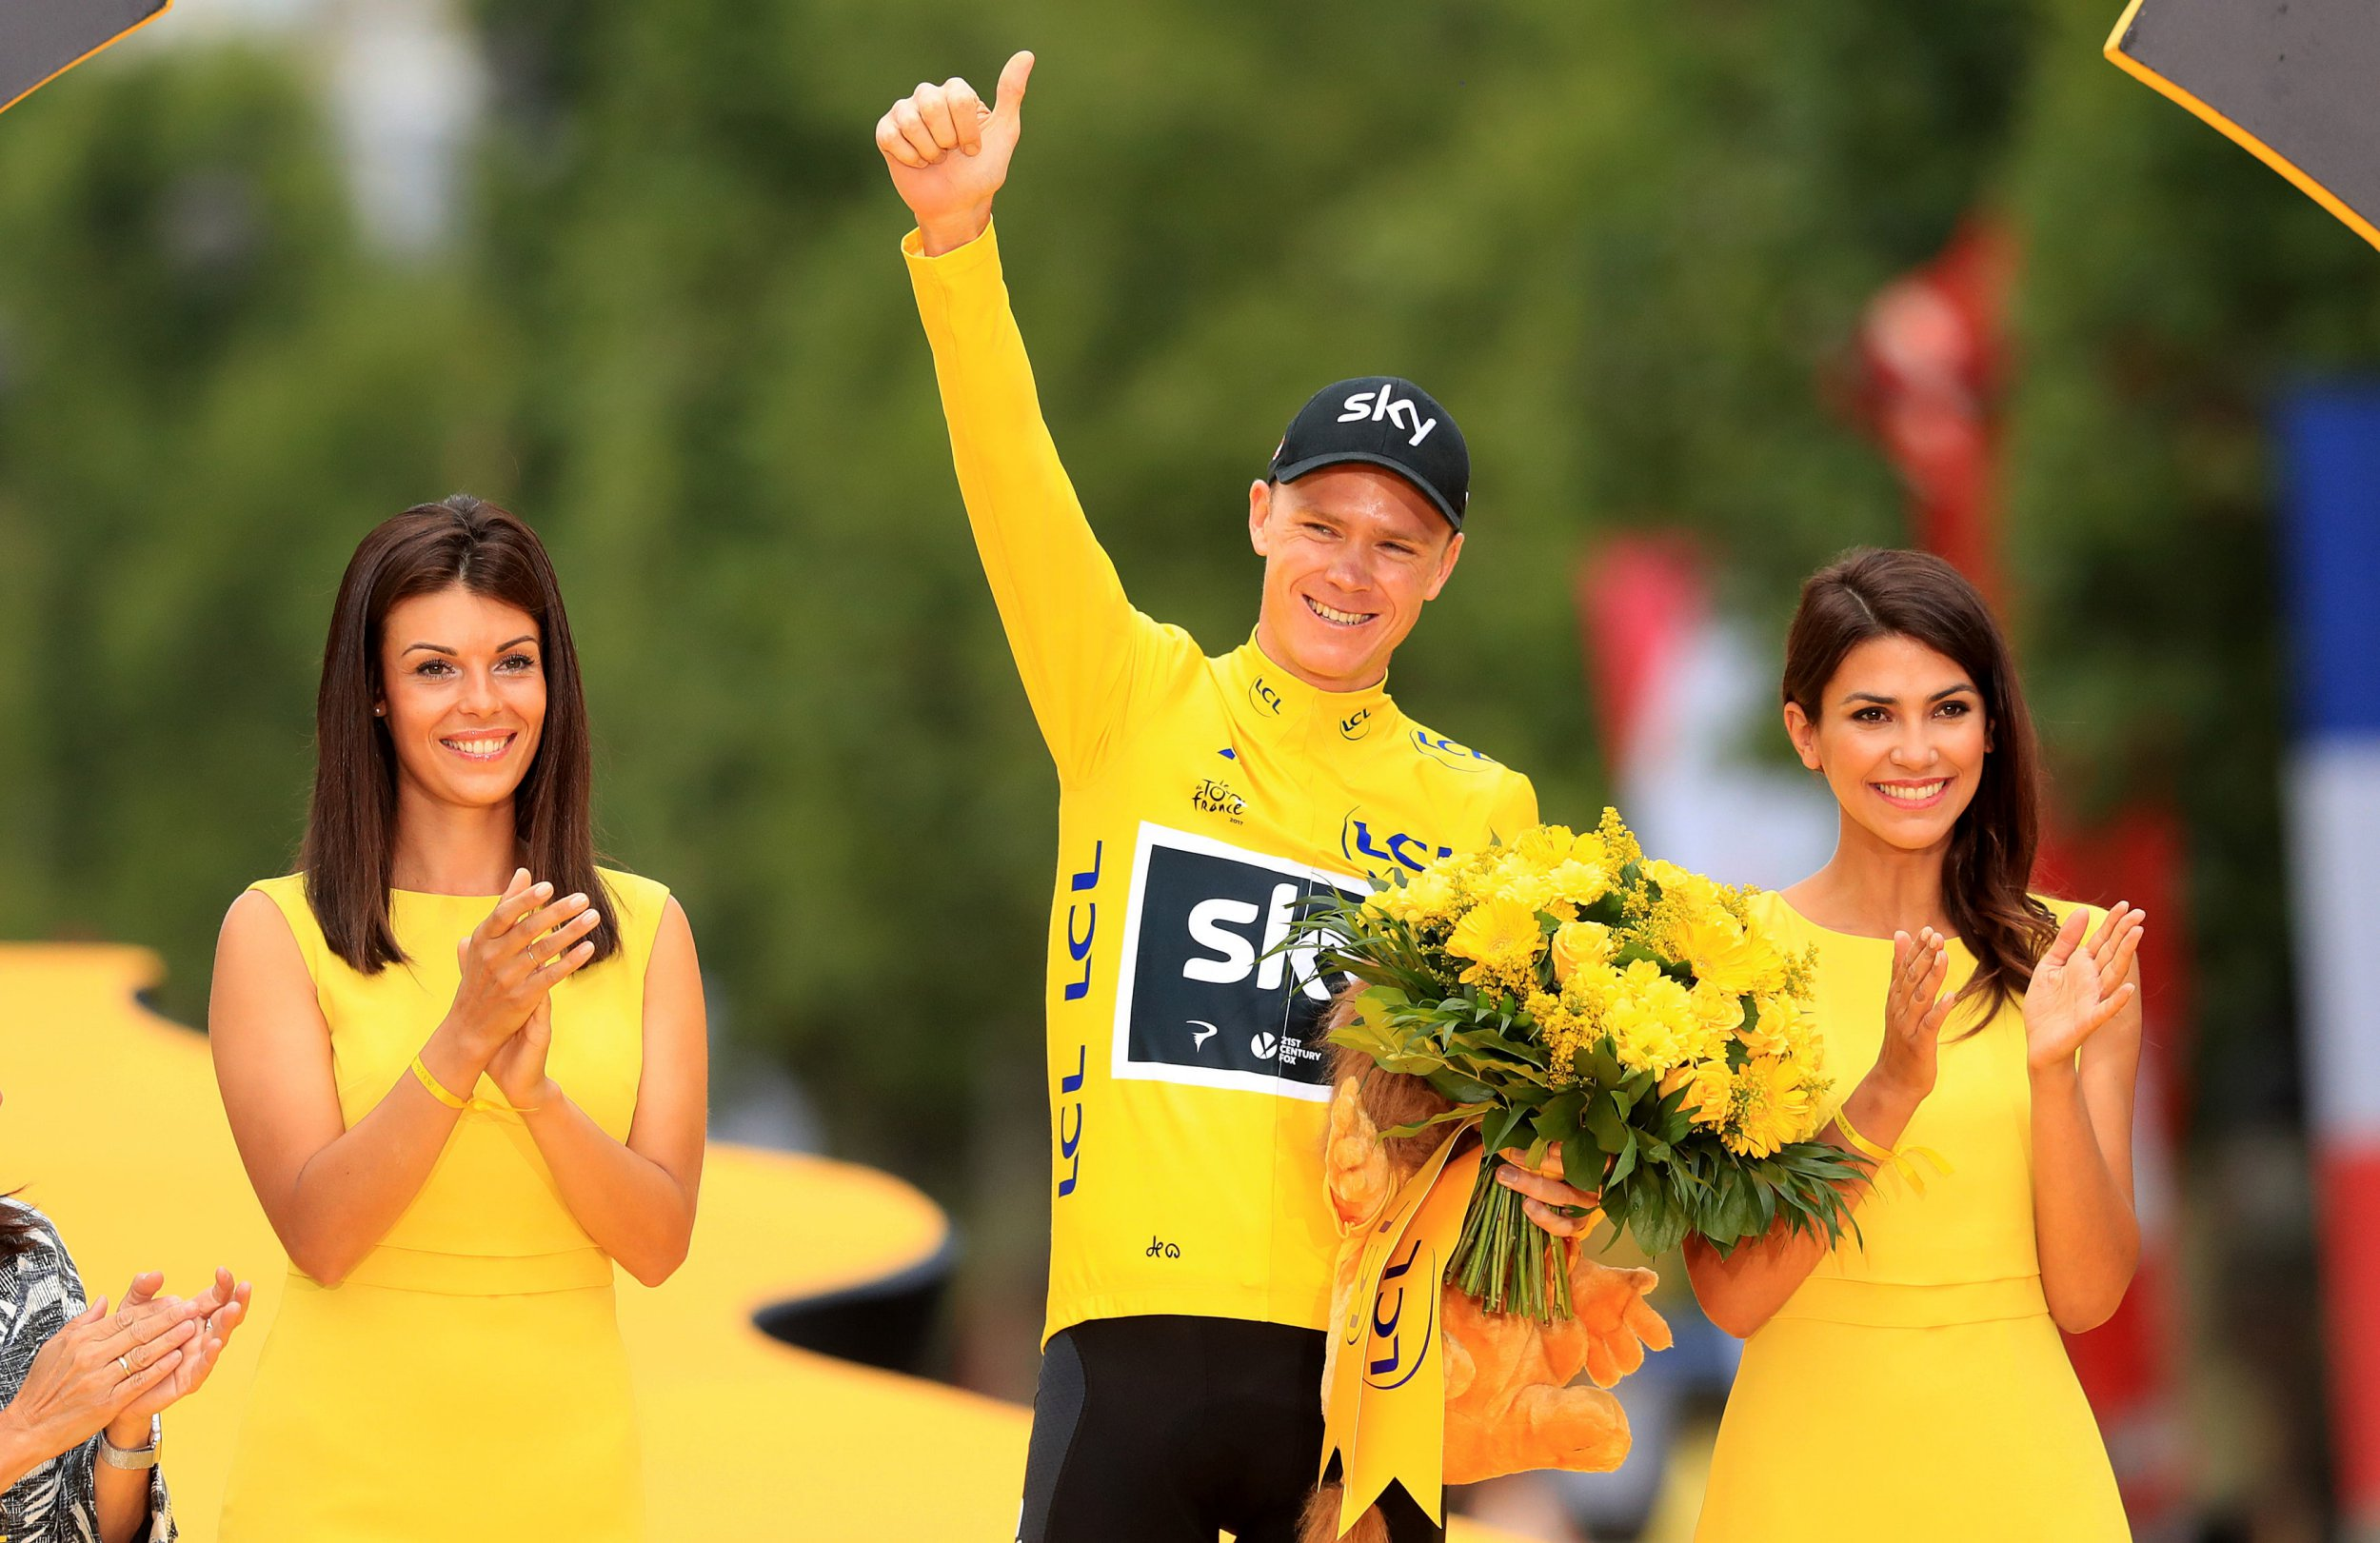 Chris Froome cleared to defend Tour de France title as anti-doping case is dropped